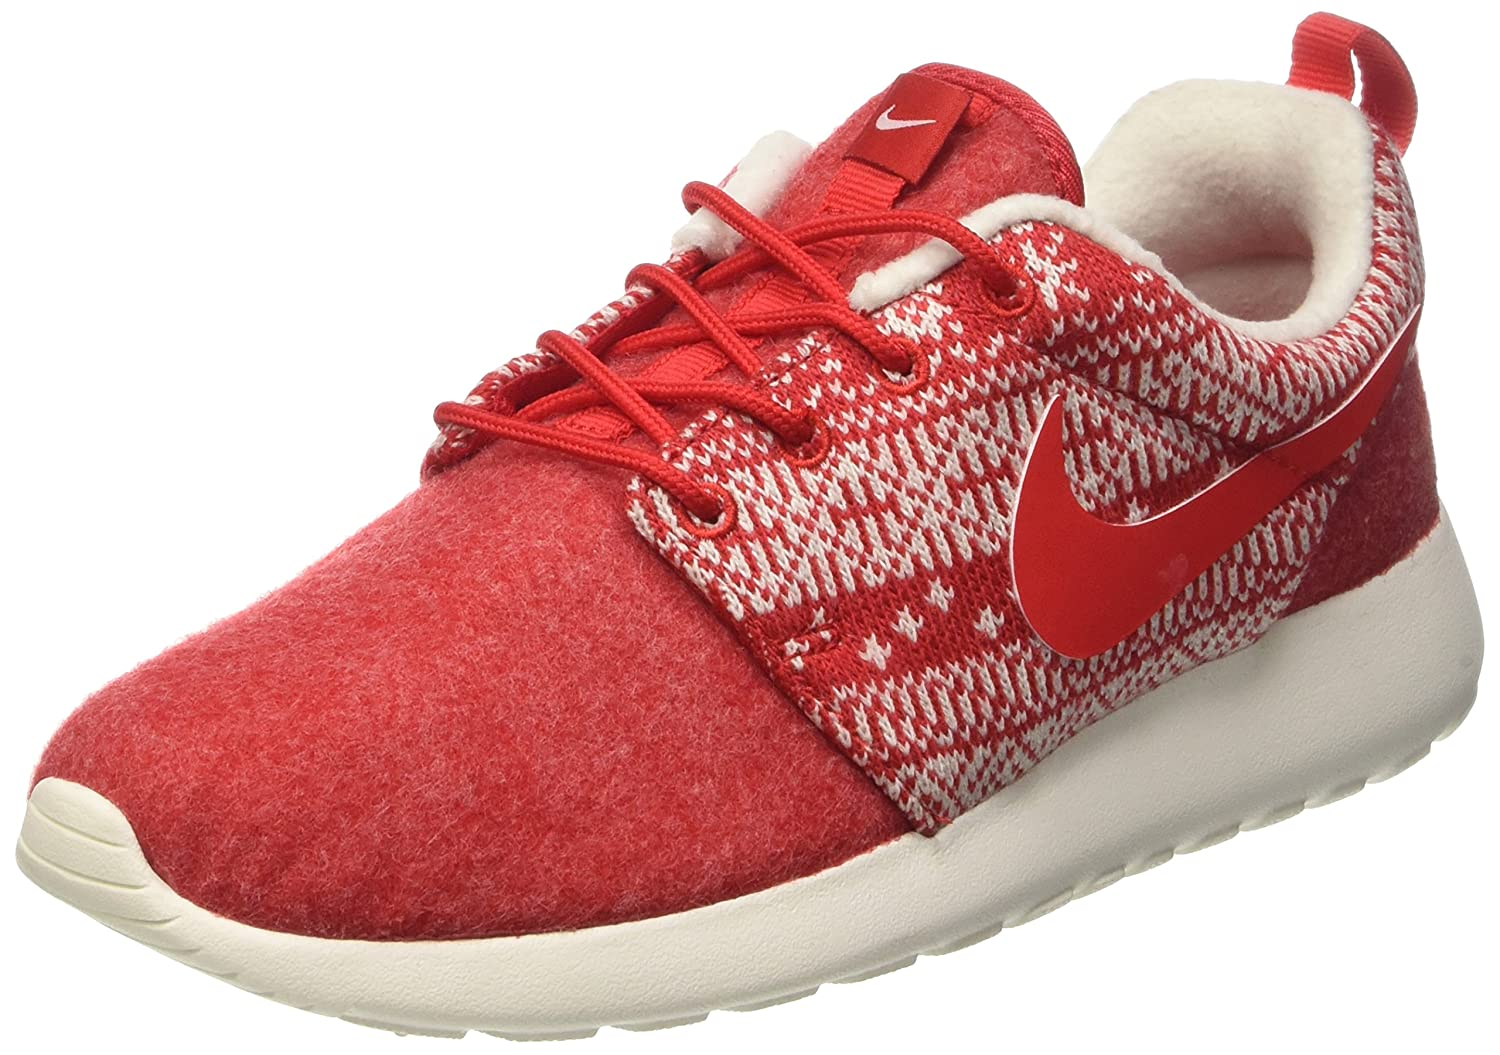 noitd Nike Wmns Roshe One Winter, Women\'s Sports shoes: Amazon.co.uk